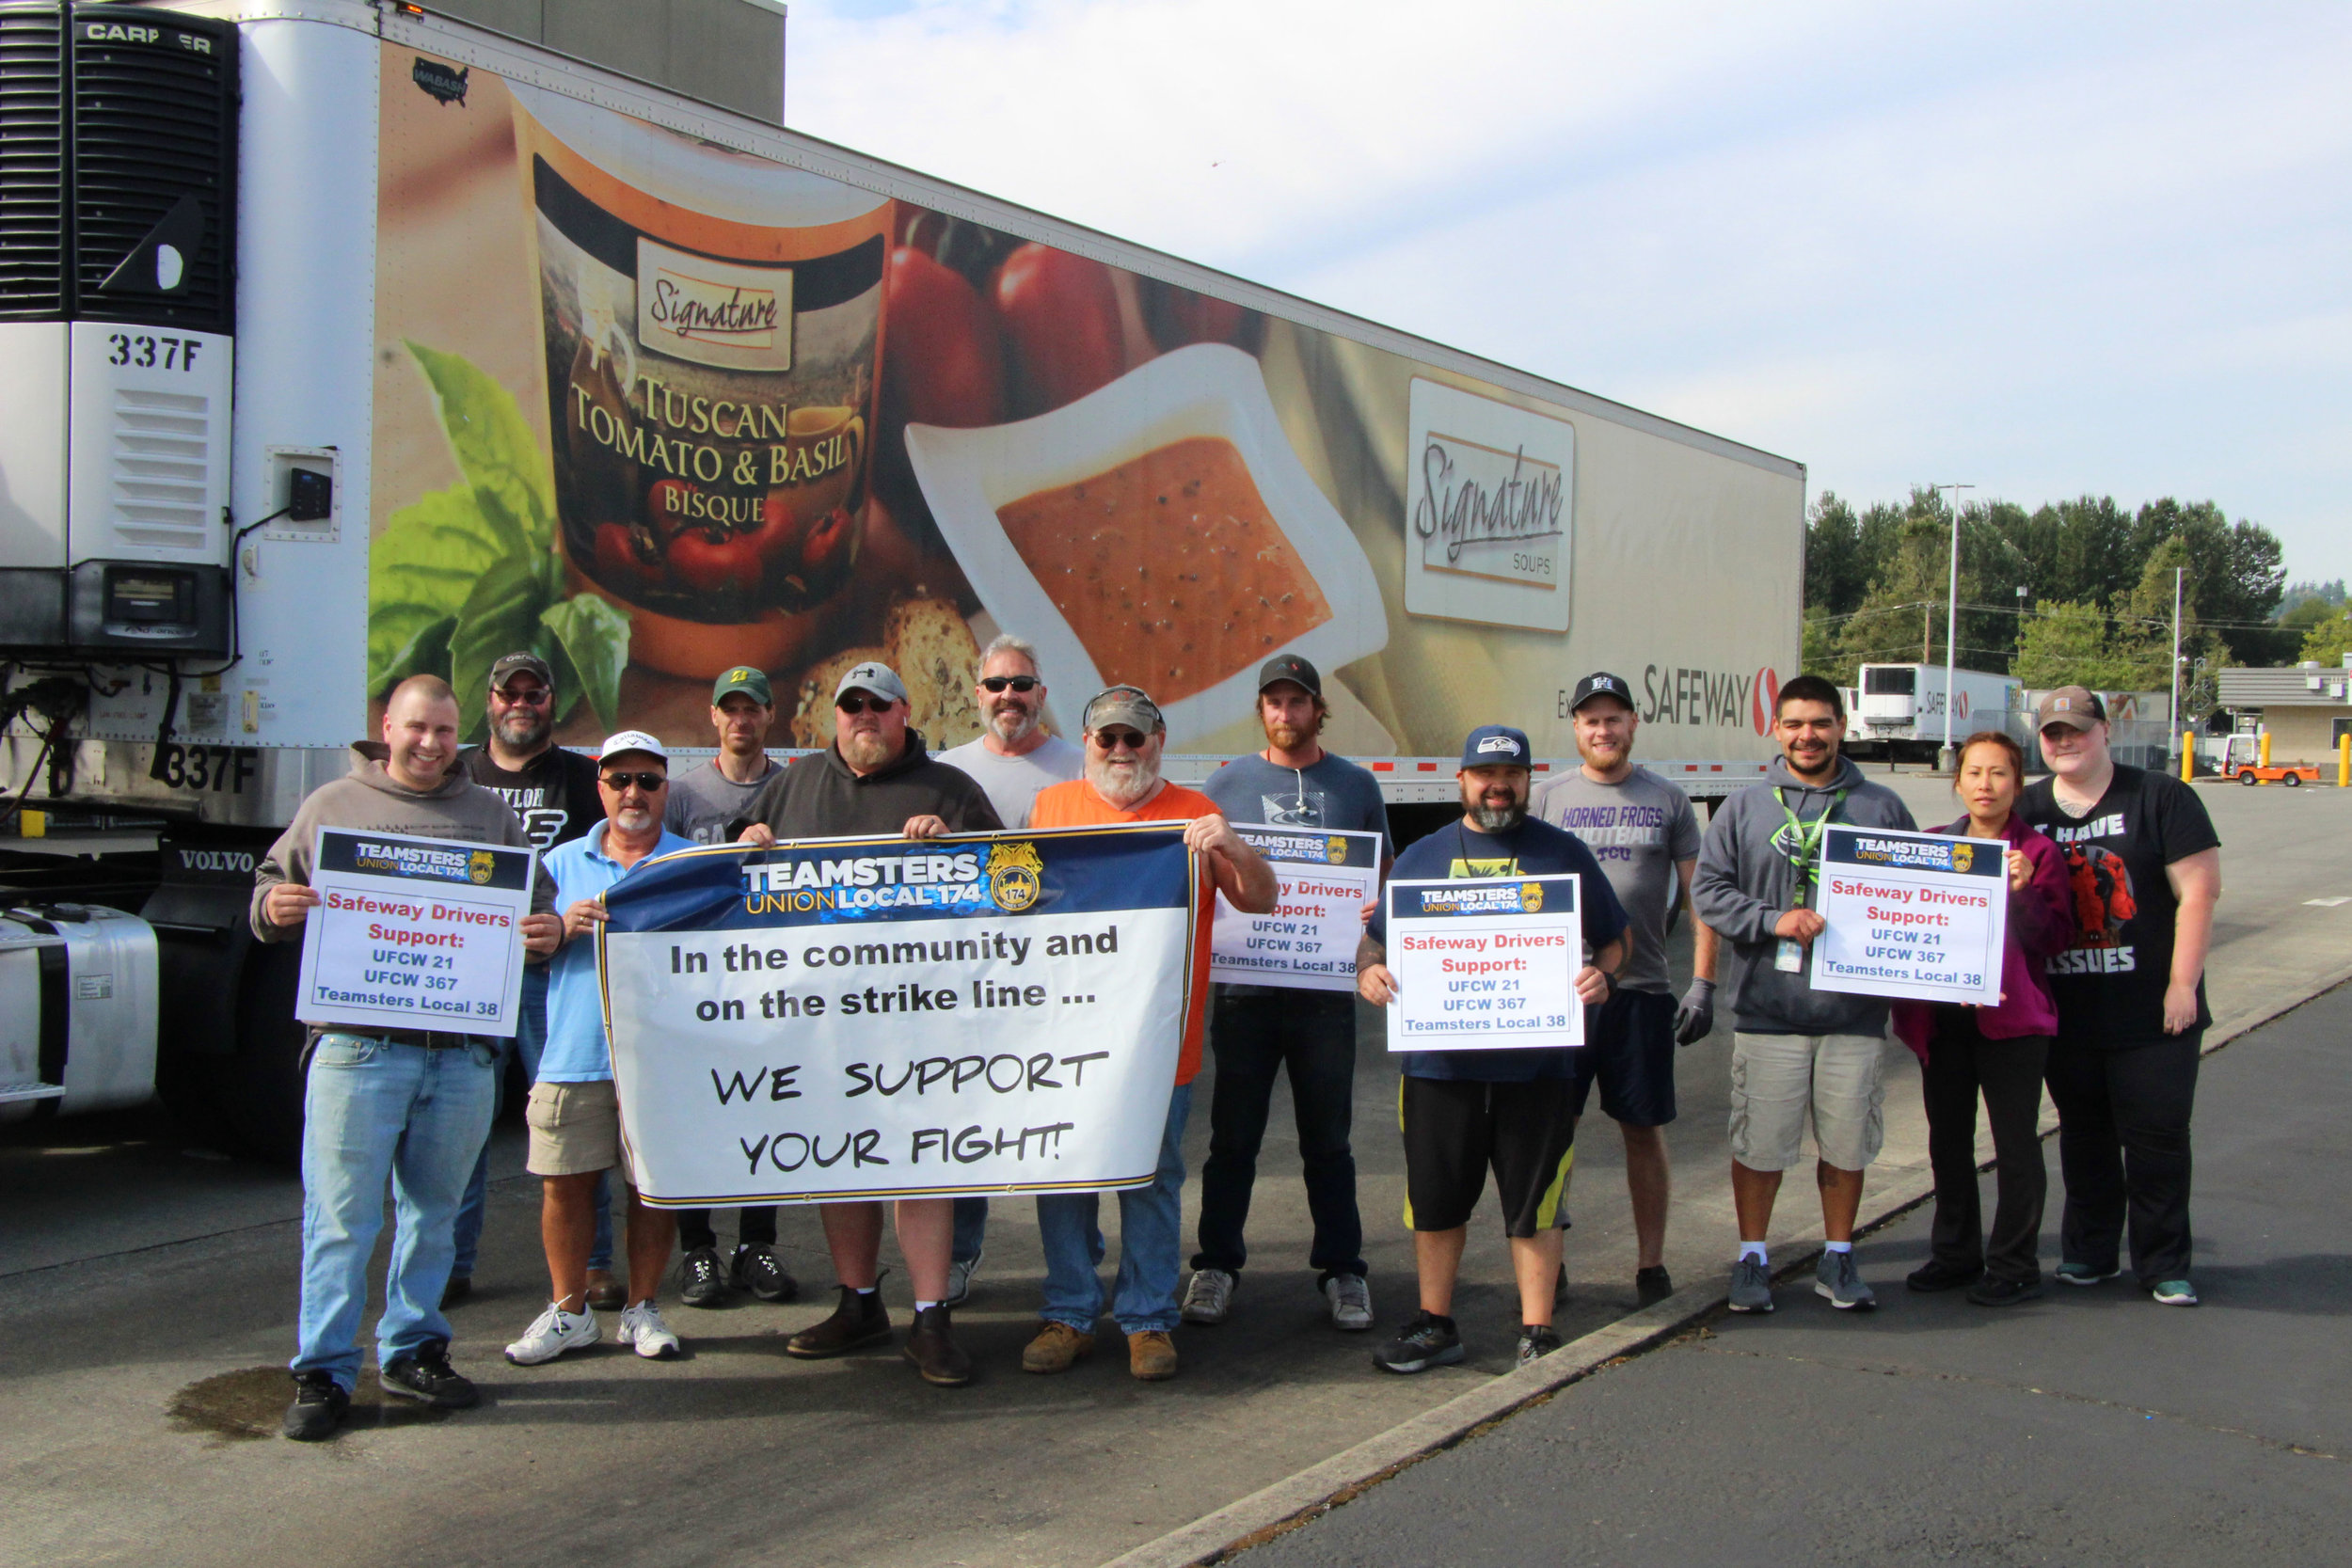 Teamsters 174 stands in solidarity  with Puget Sound grocery store workers